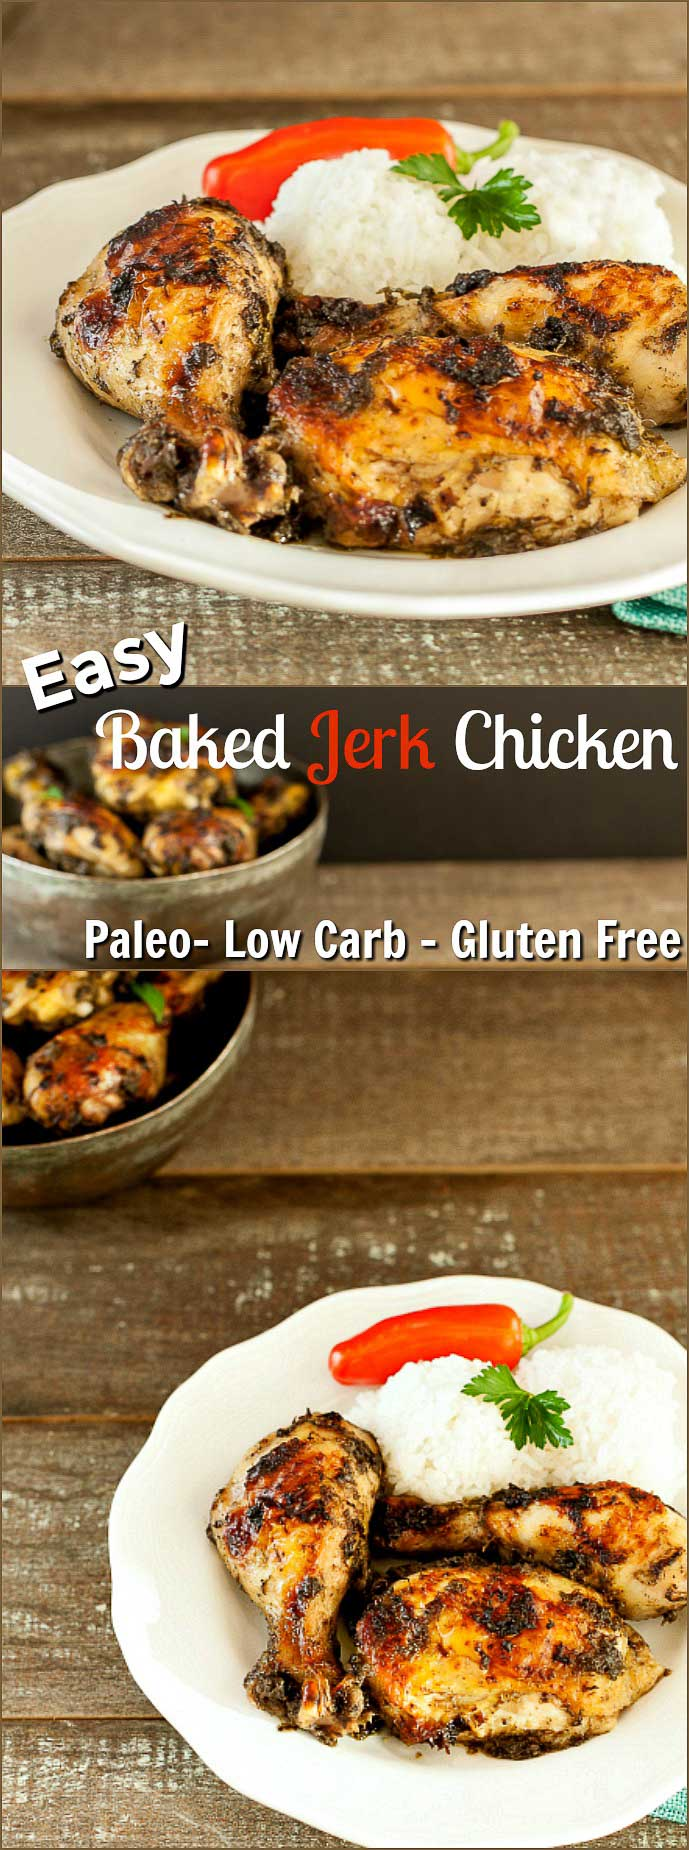 Easy Baked Jerk Chicken- Low Carb , Paleo, and Gluten Free